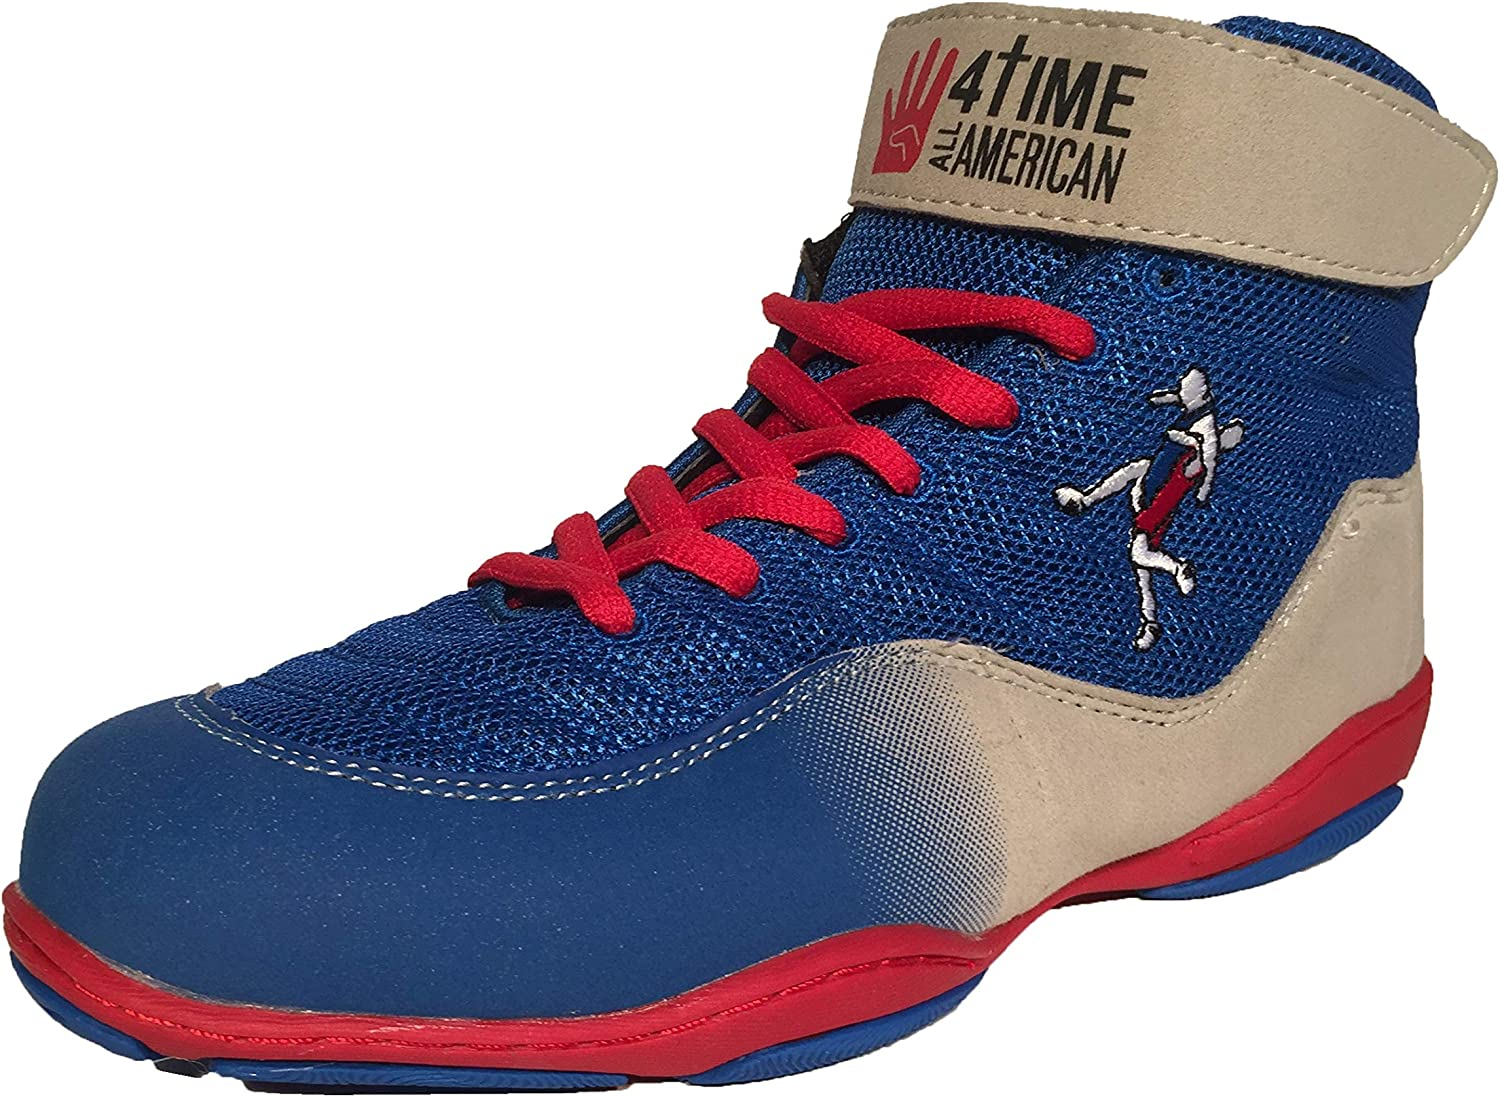 4-Time All American The Patriot, bluee Wrestling shoes Youth Sizes 1-6